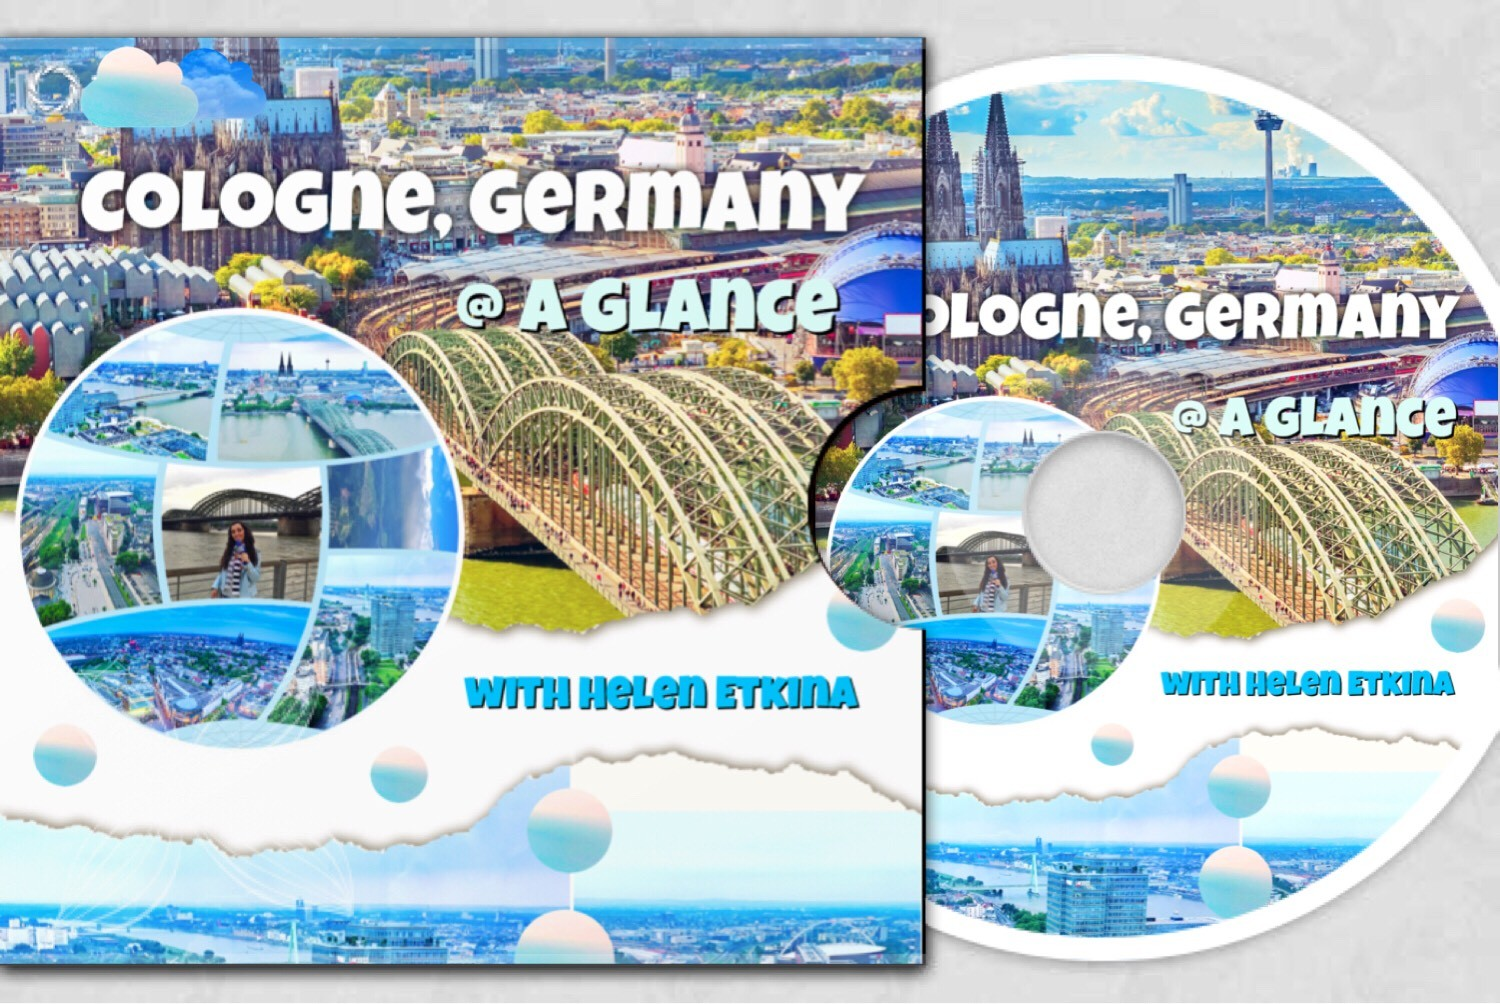 Cologne_Germany_at_a Glance-001